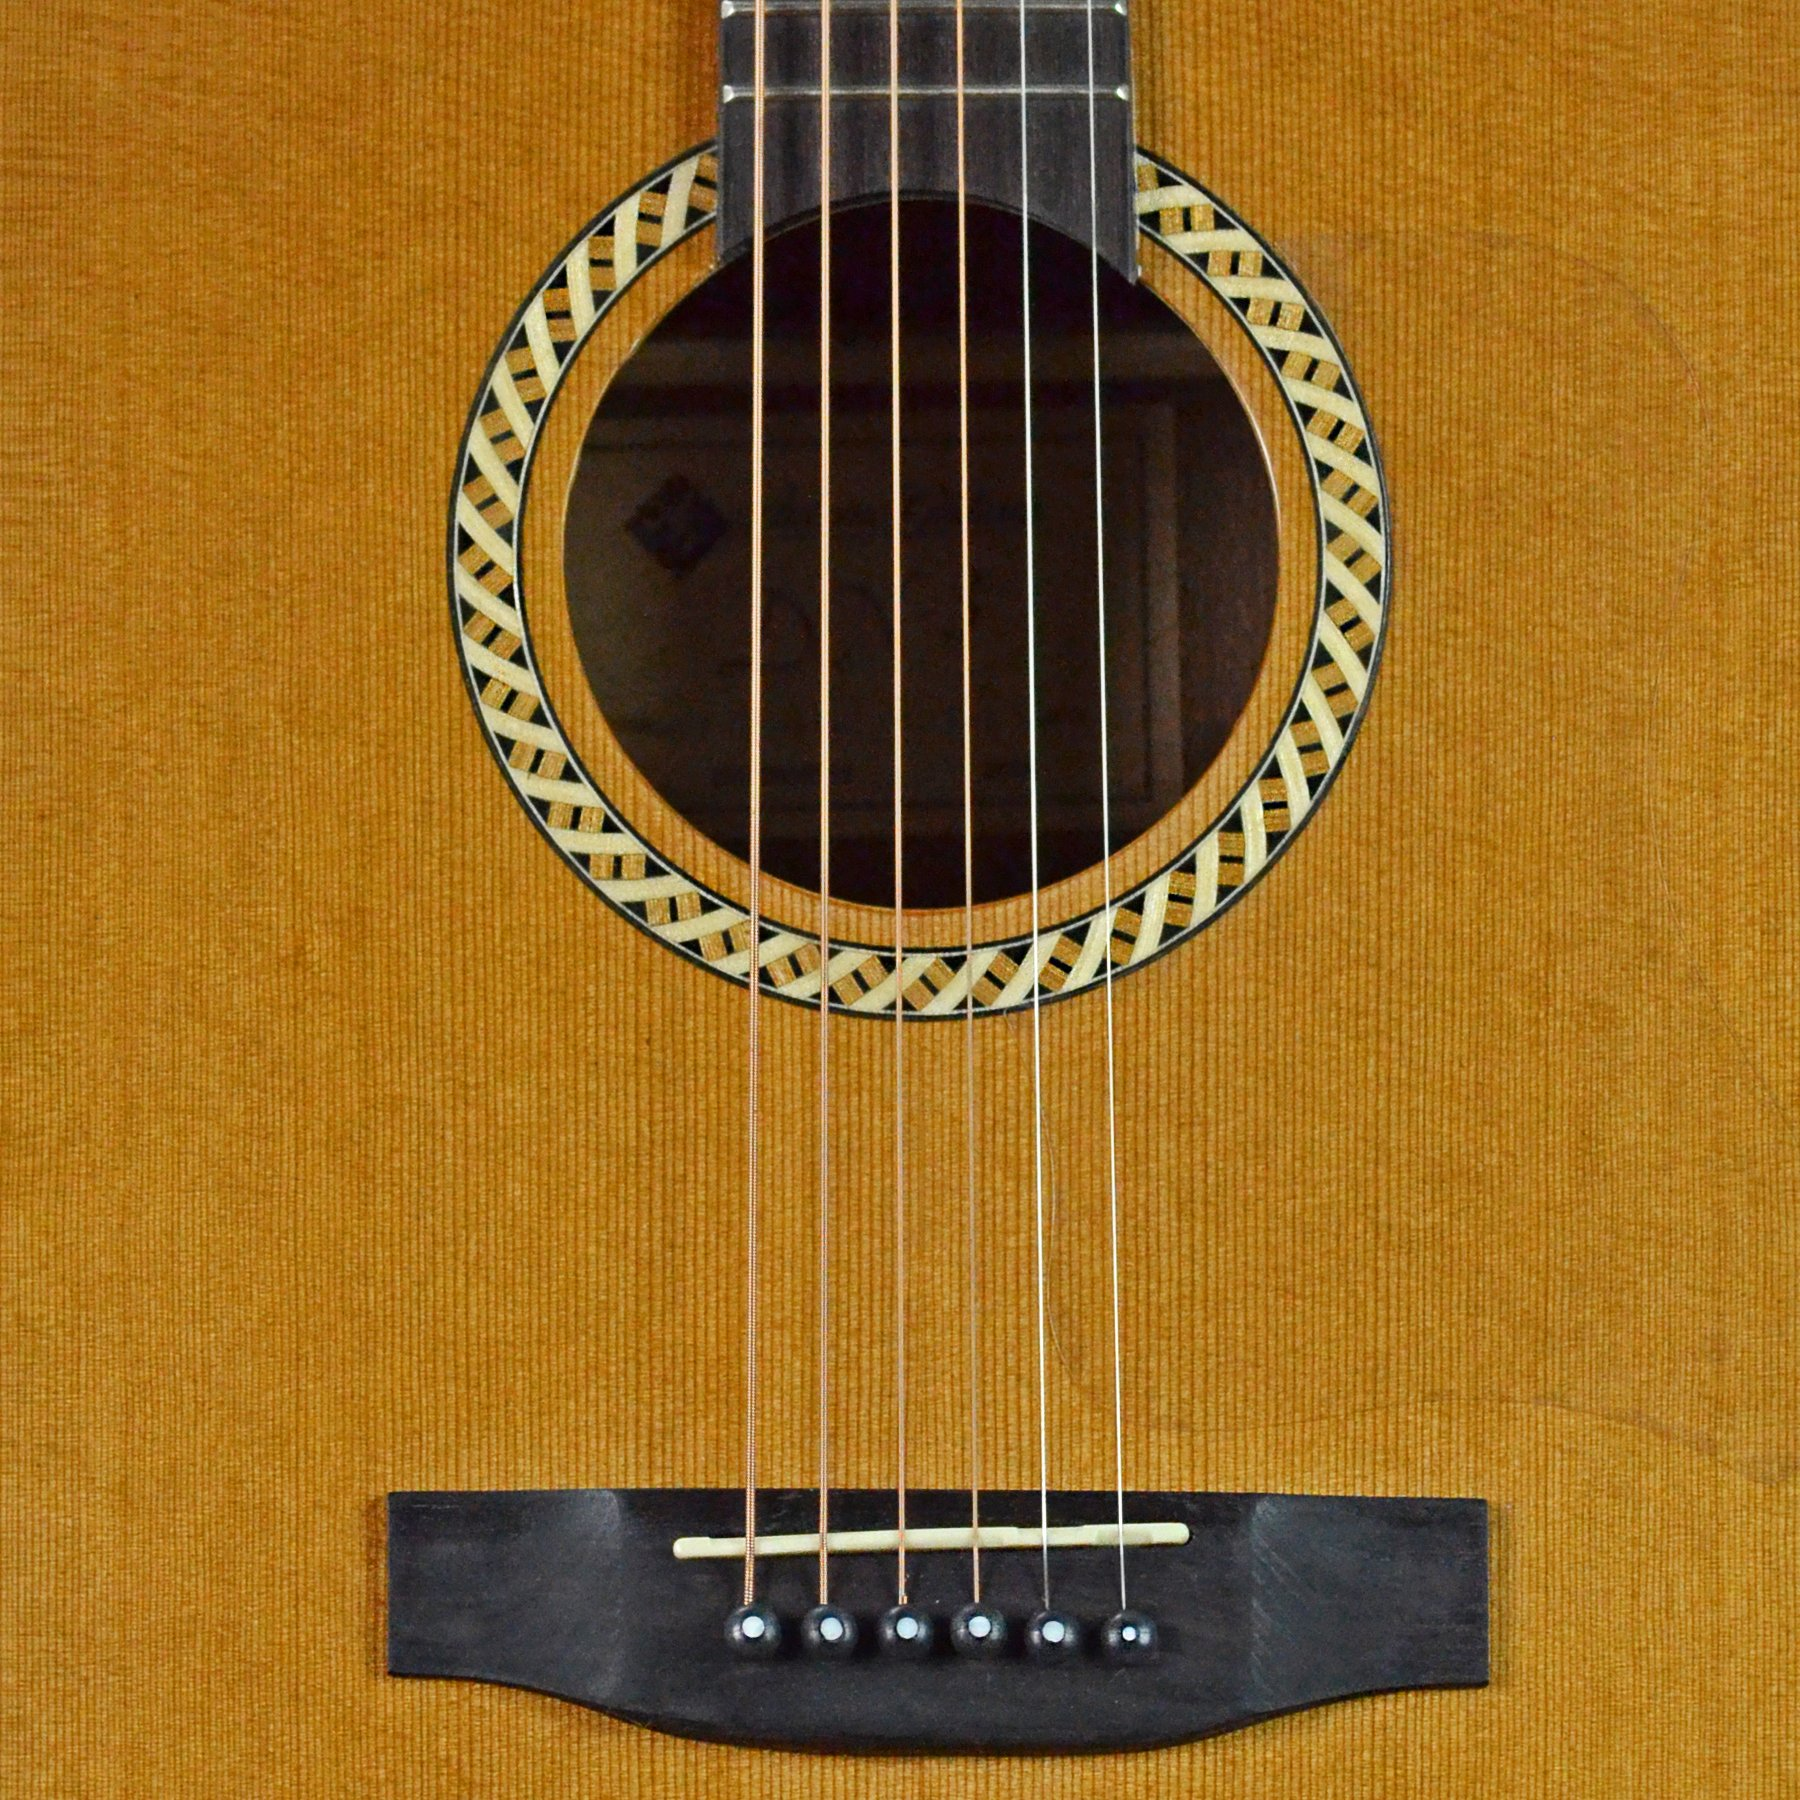 CLEARANCE Antonio Giuliani DN-3 Steel-String Dreadnought Acoustic Guitar in action